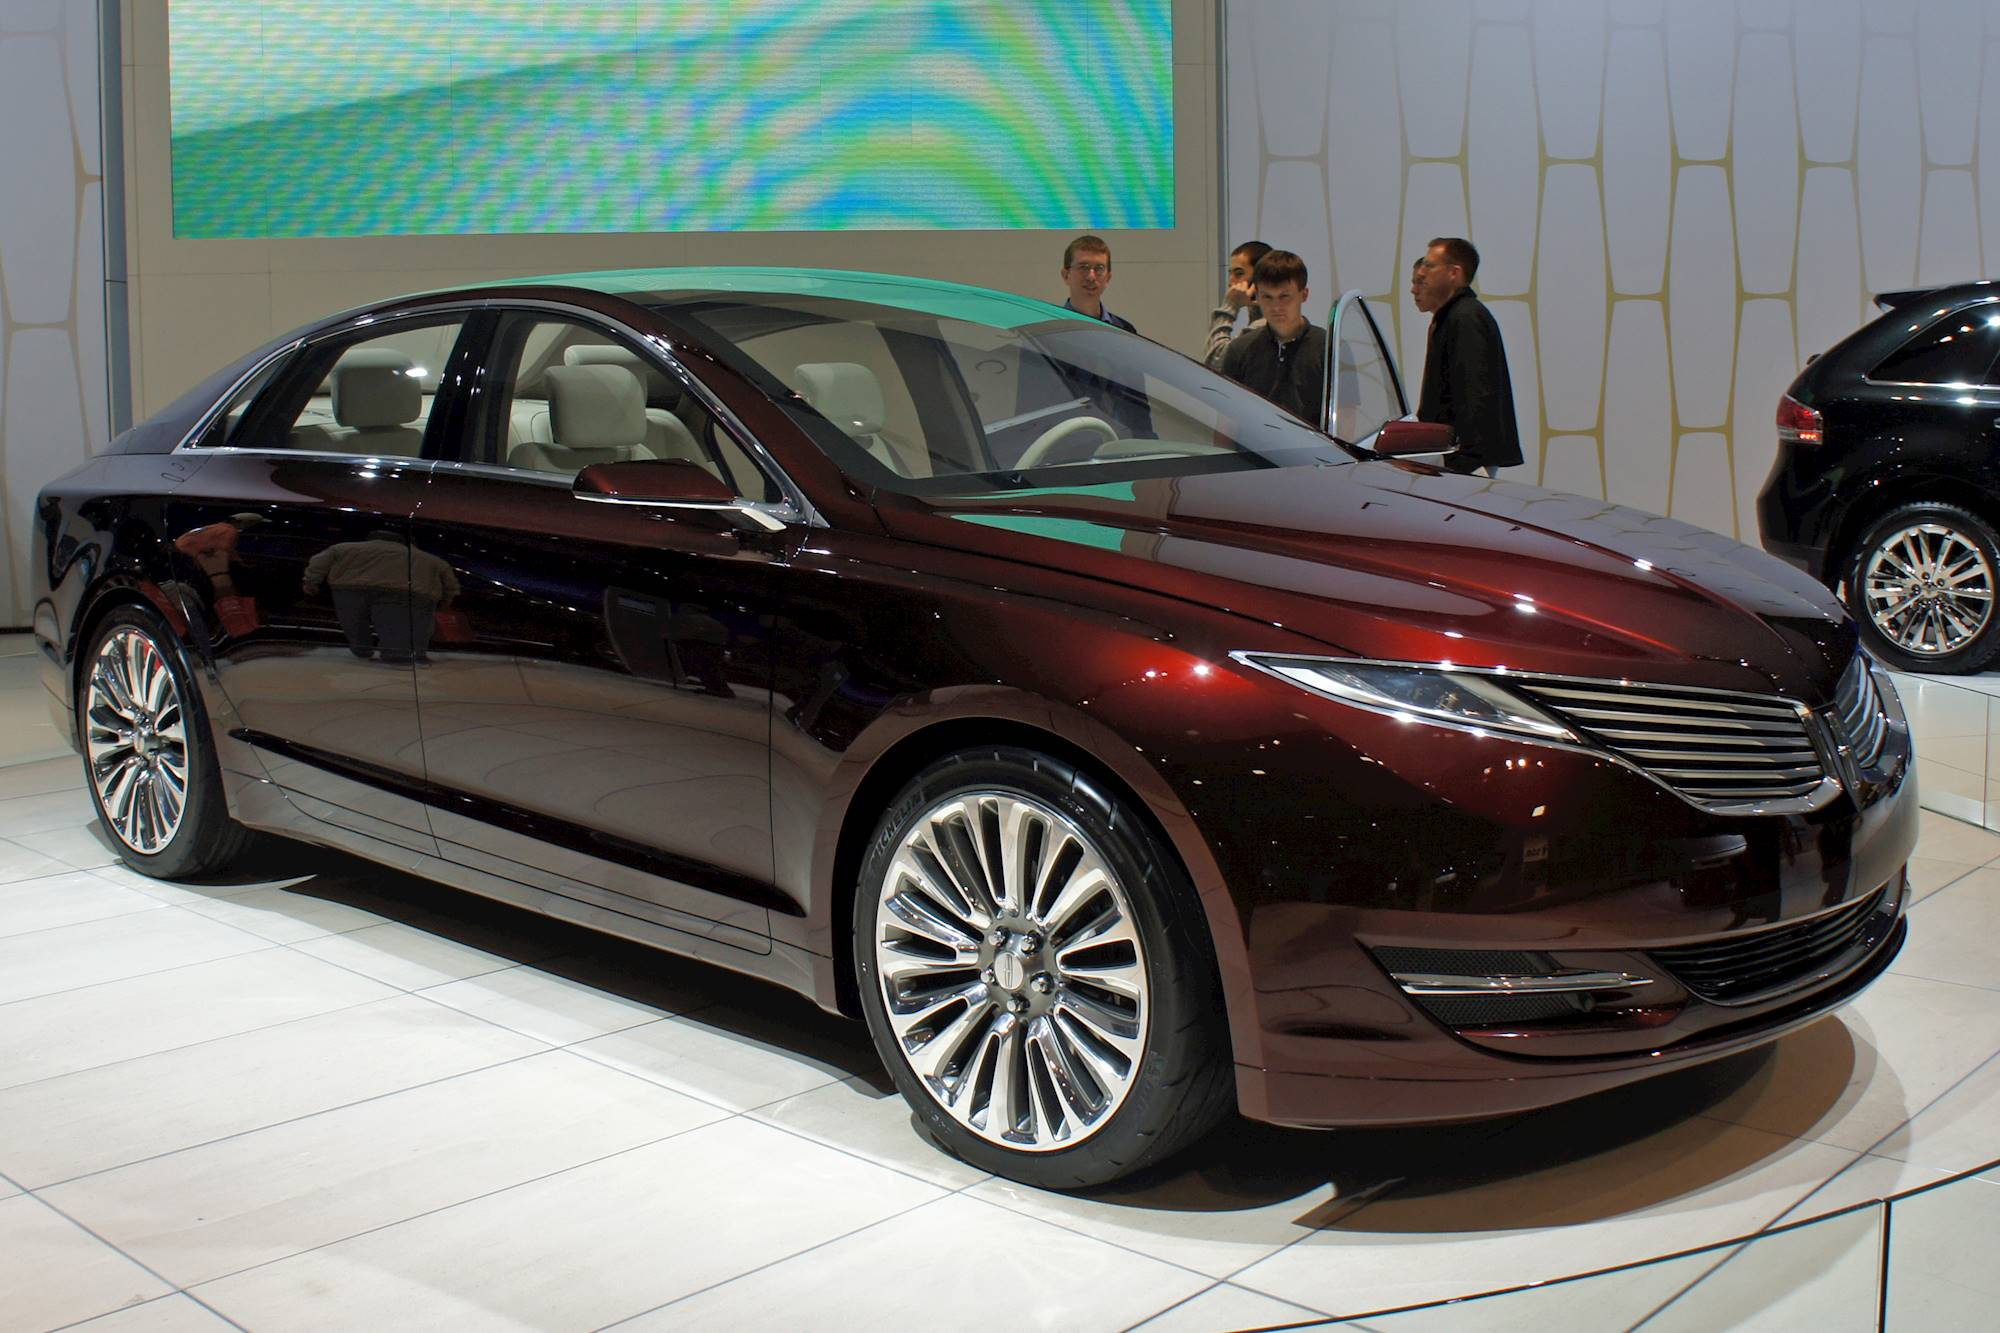 2012 lincoln mkz hybrid sedan 2 5l hybrid cvt auto. Black Bedroom Furniture Sets. Home Design Ideas